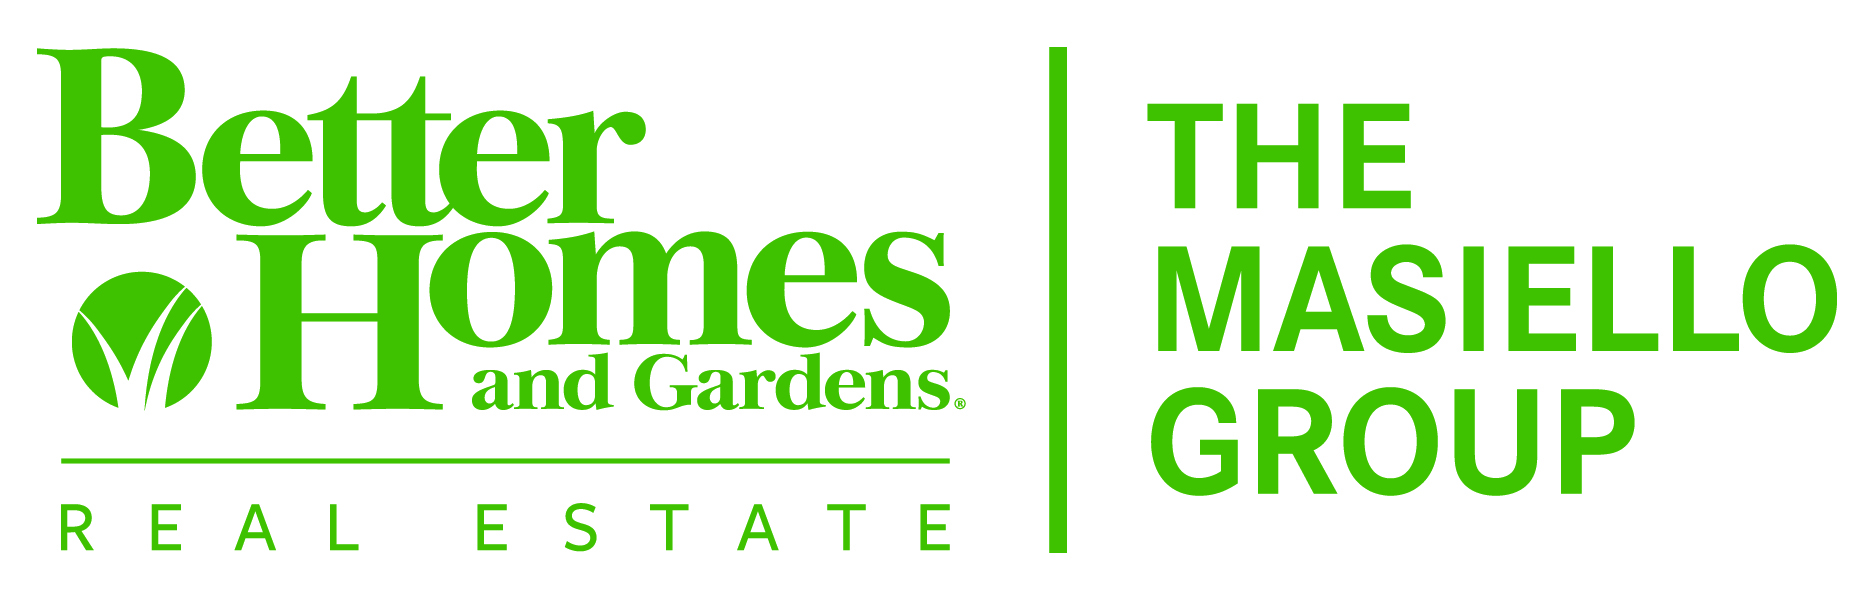 Better Homes And Gardens Real Estate The Masiello Group: homes and gardens logo